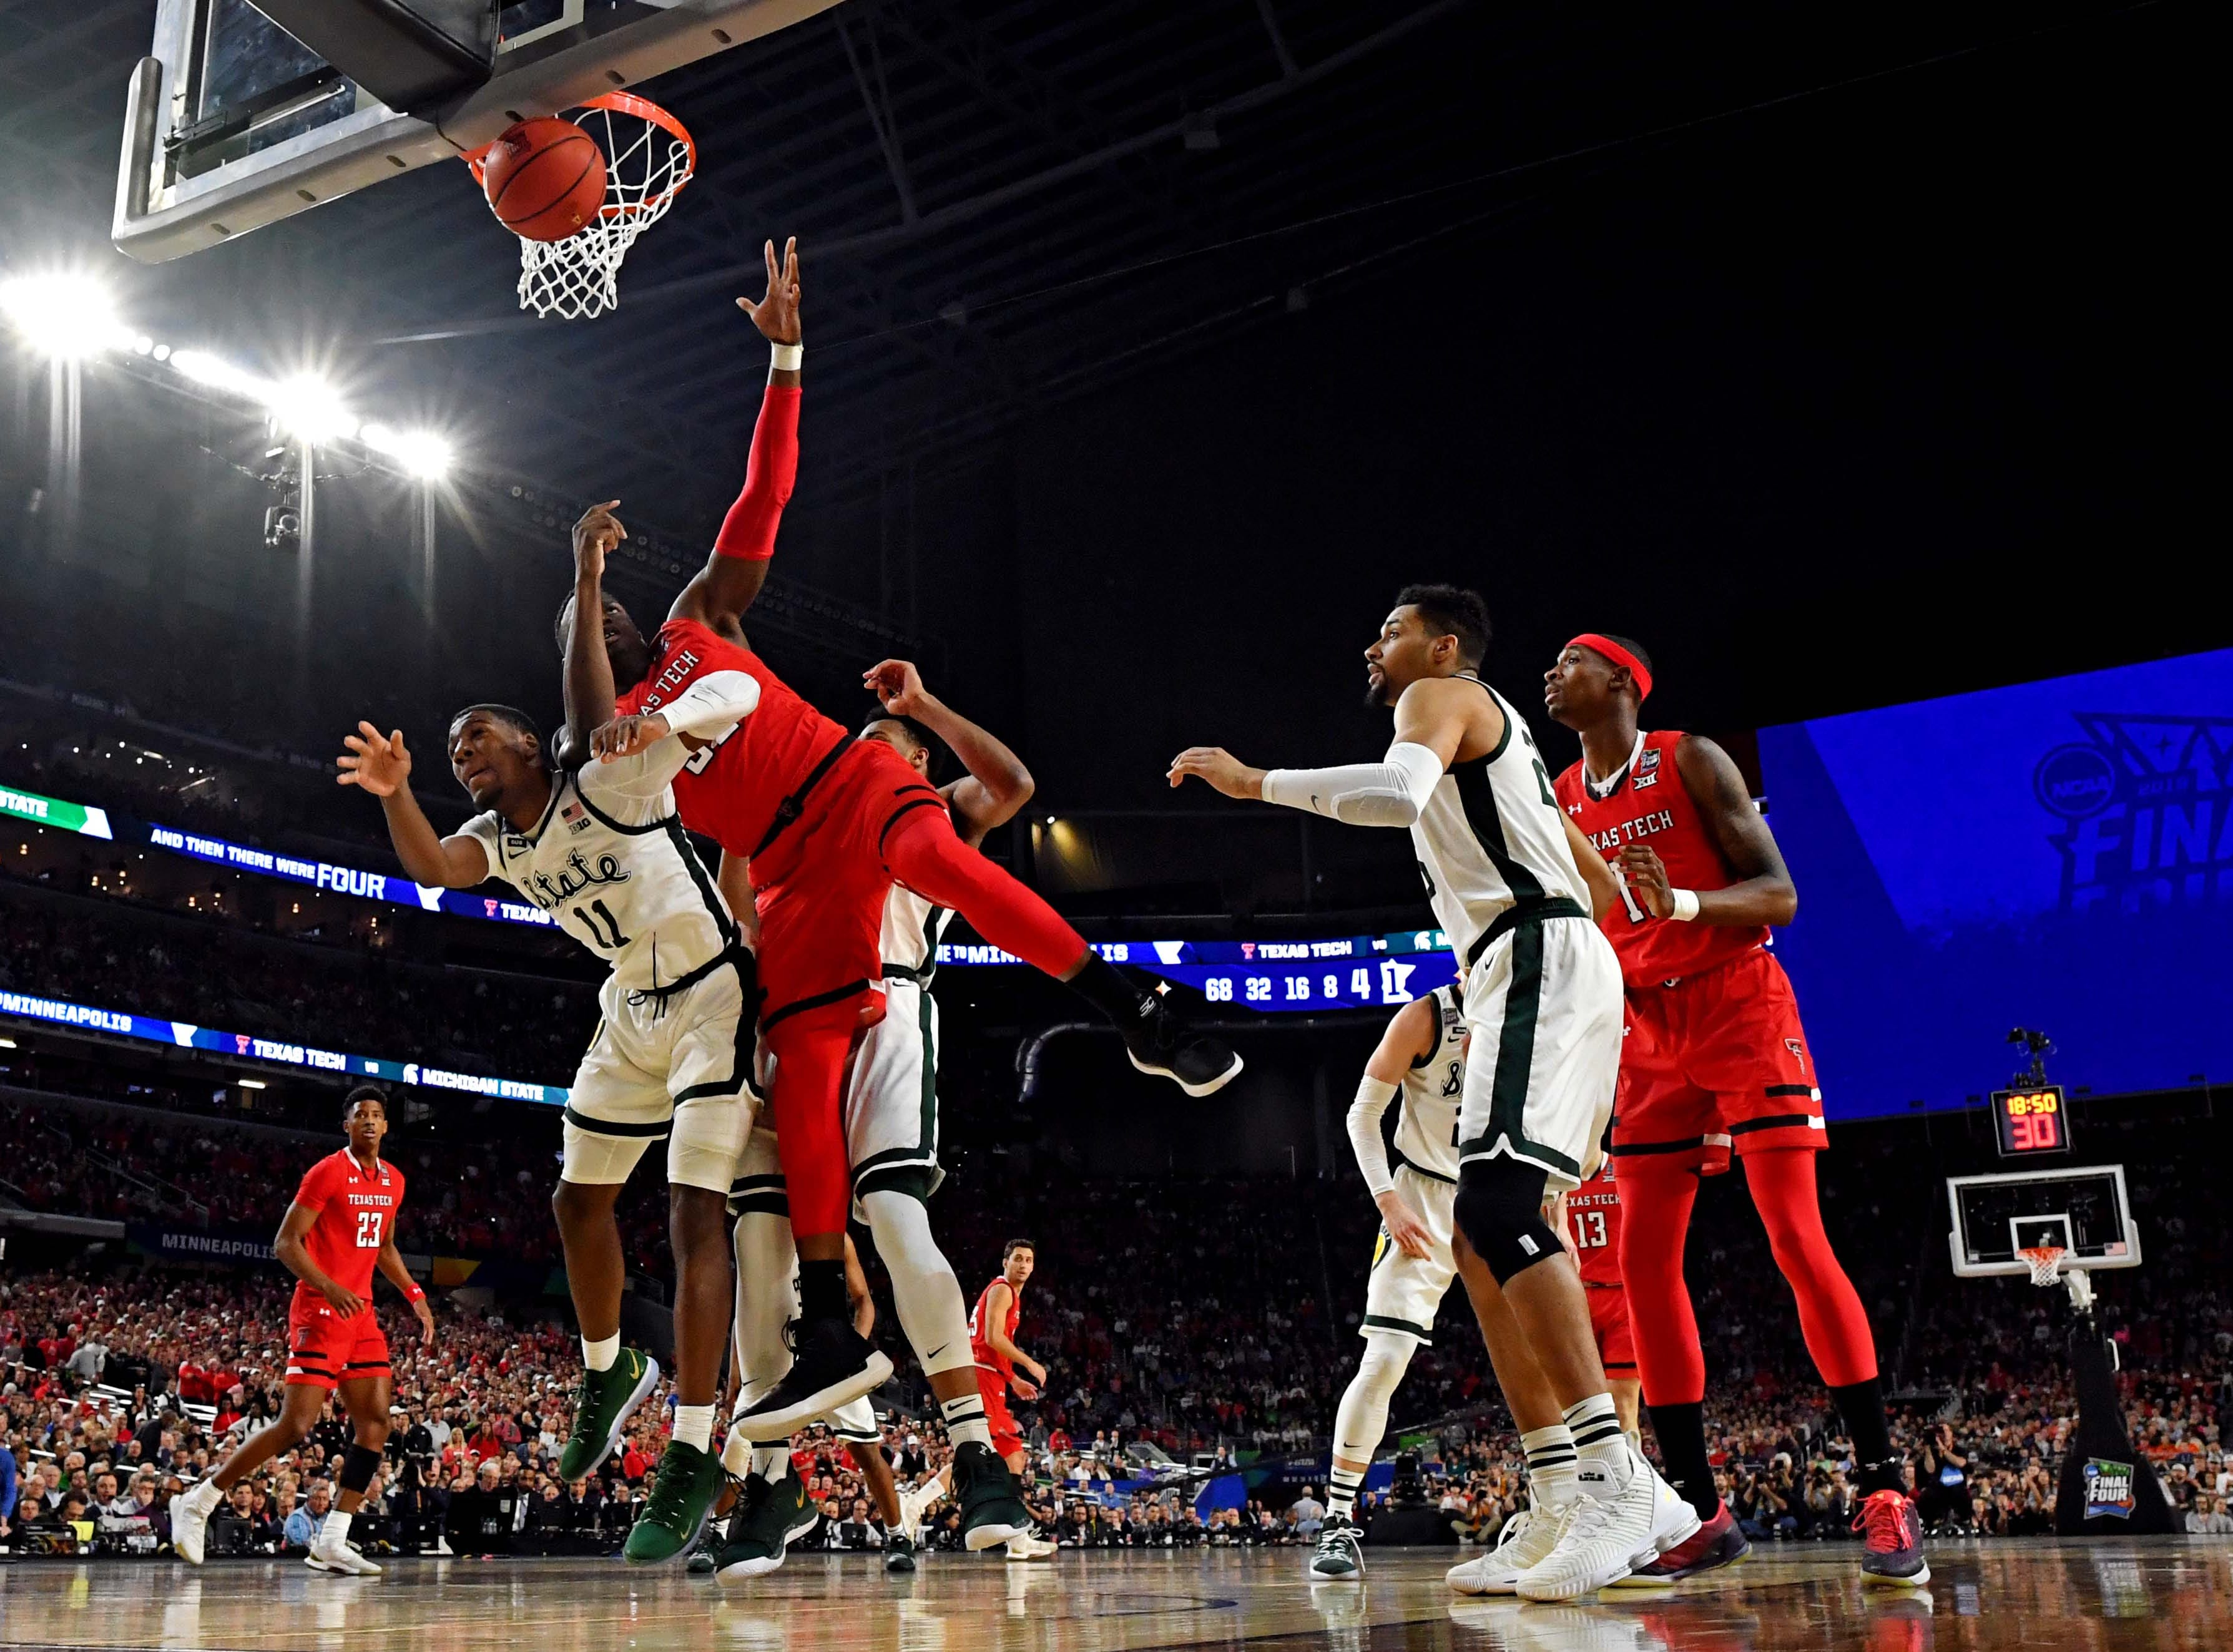 Apr 6, 2019; Minneapolis, MN, USA; Michigan State Spartans forward Aaron Henry (11) and Texas Tech Red Raiders center Norense Odiase (32) go for a rebound during the first half in the semifinals of the 2019 men's Final Four at US Bank Stadium. Mandatory Credit: Bob Donnan-USA TODAY Sports